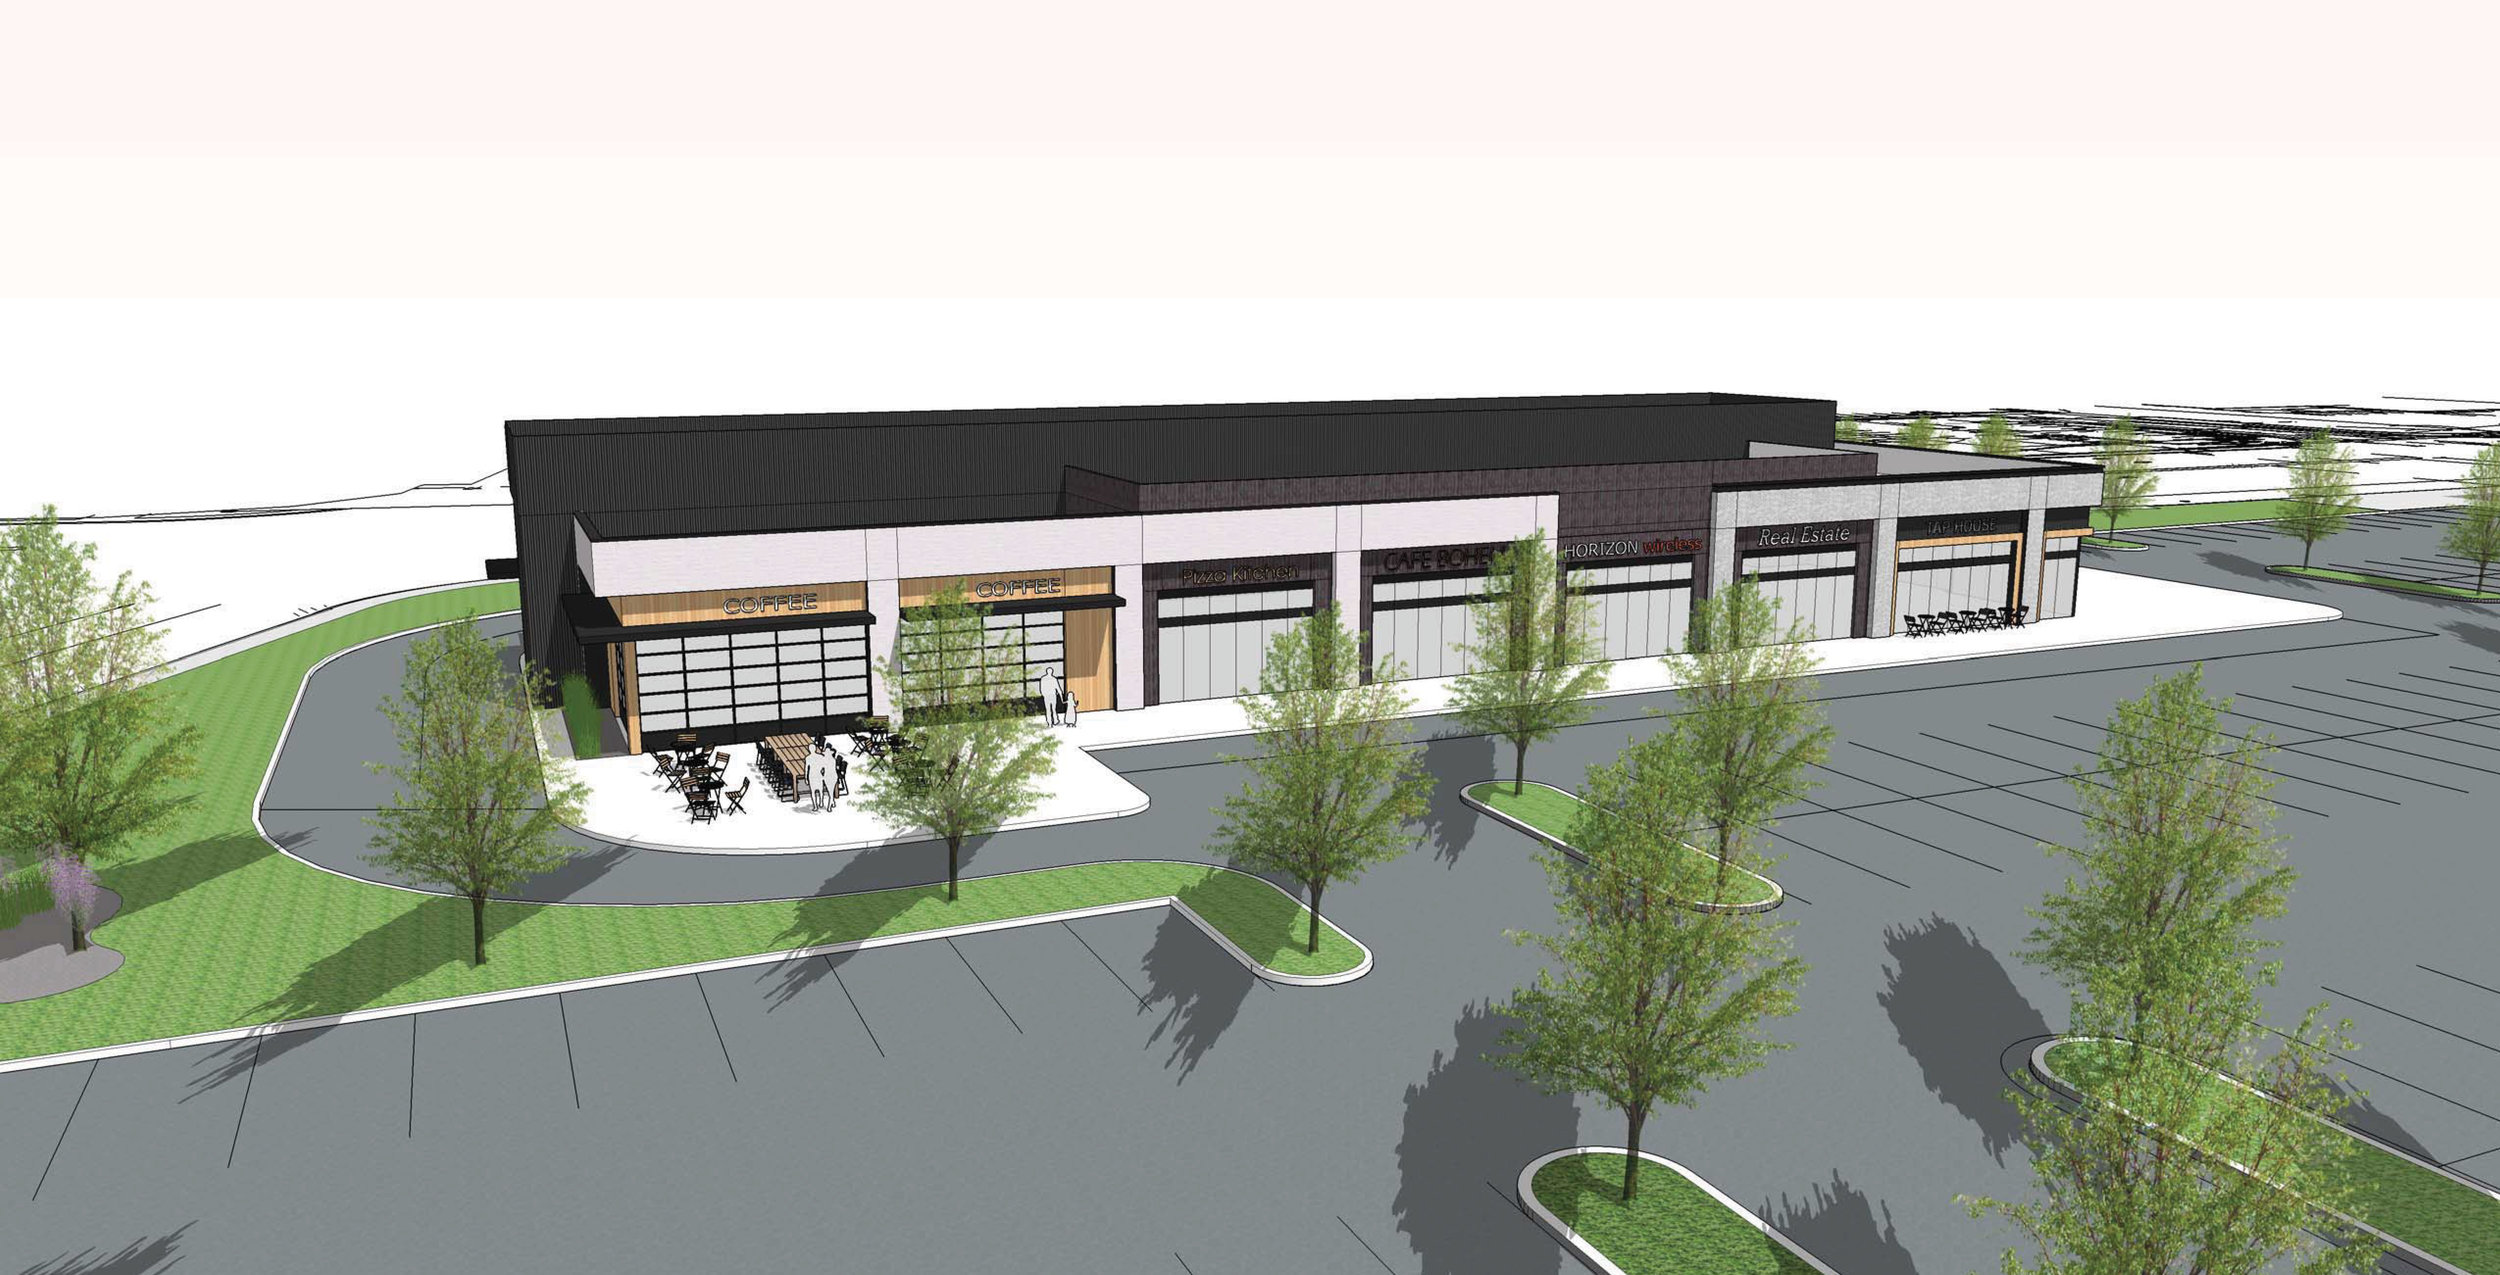 11,000 sq. ft. of retail at Staples Mill and Bethlehem Roads.